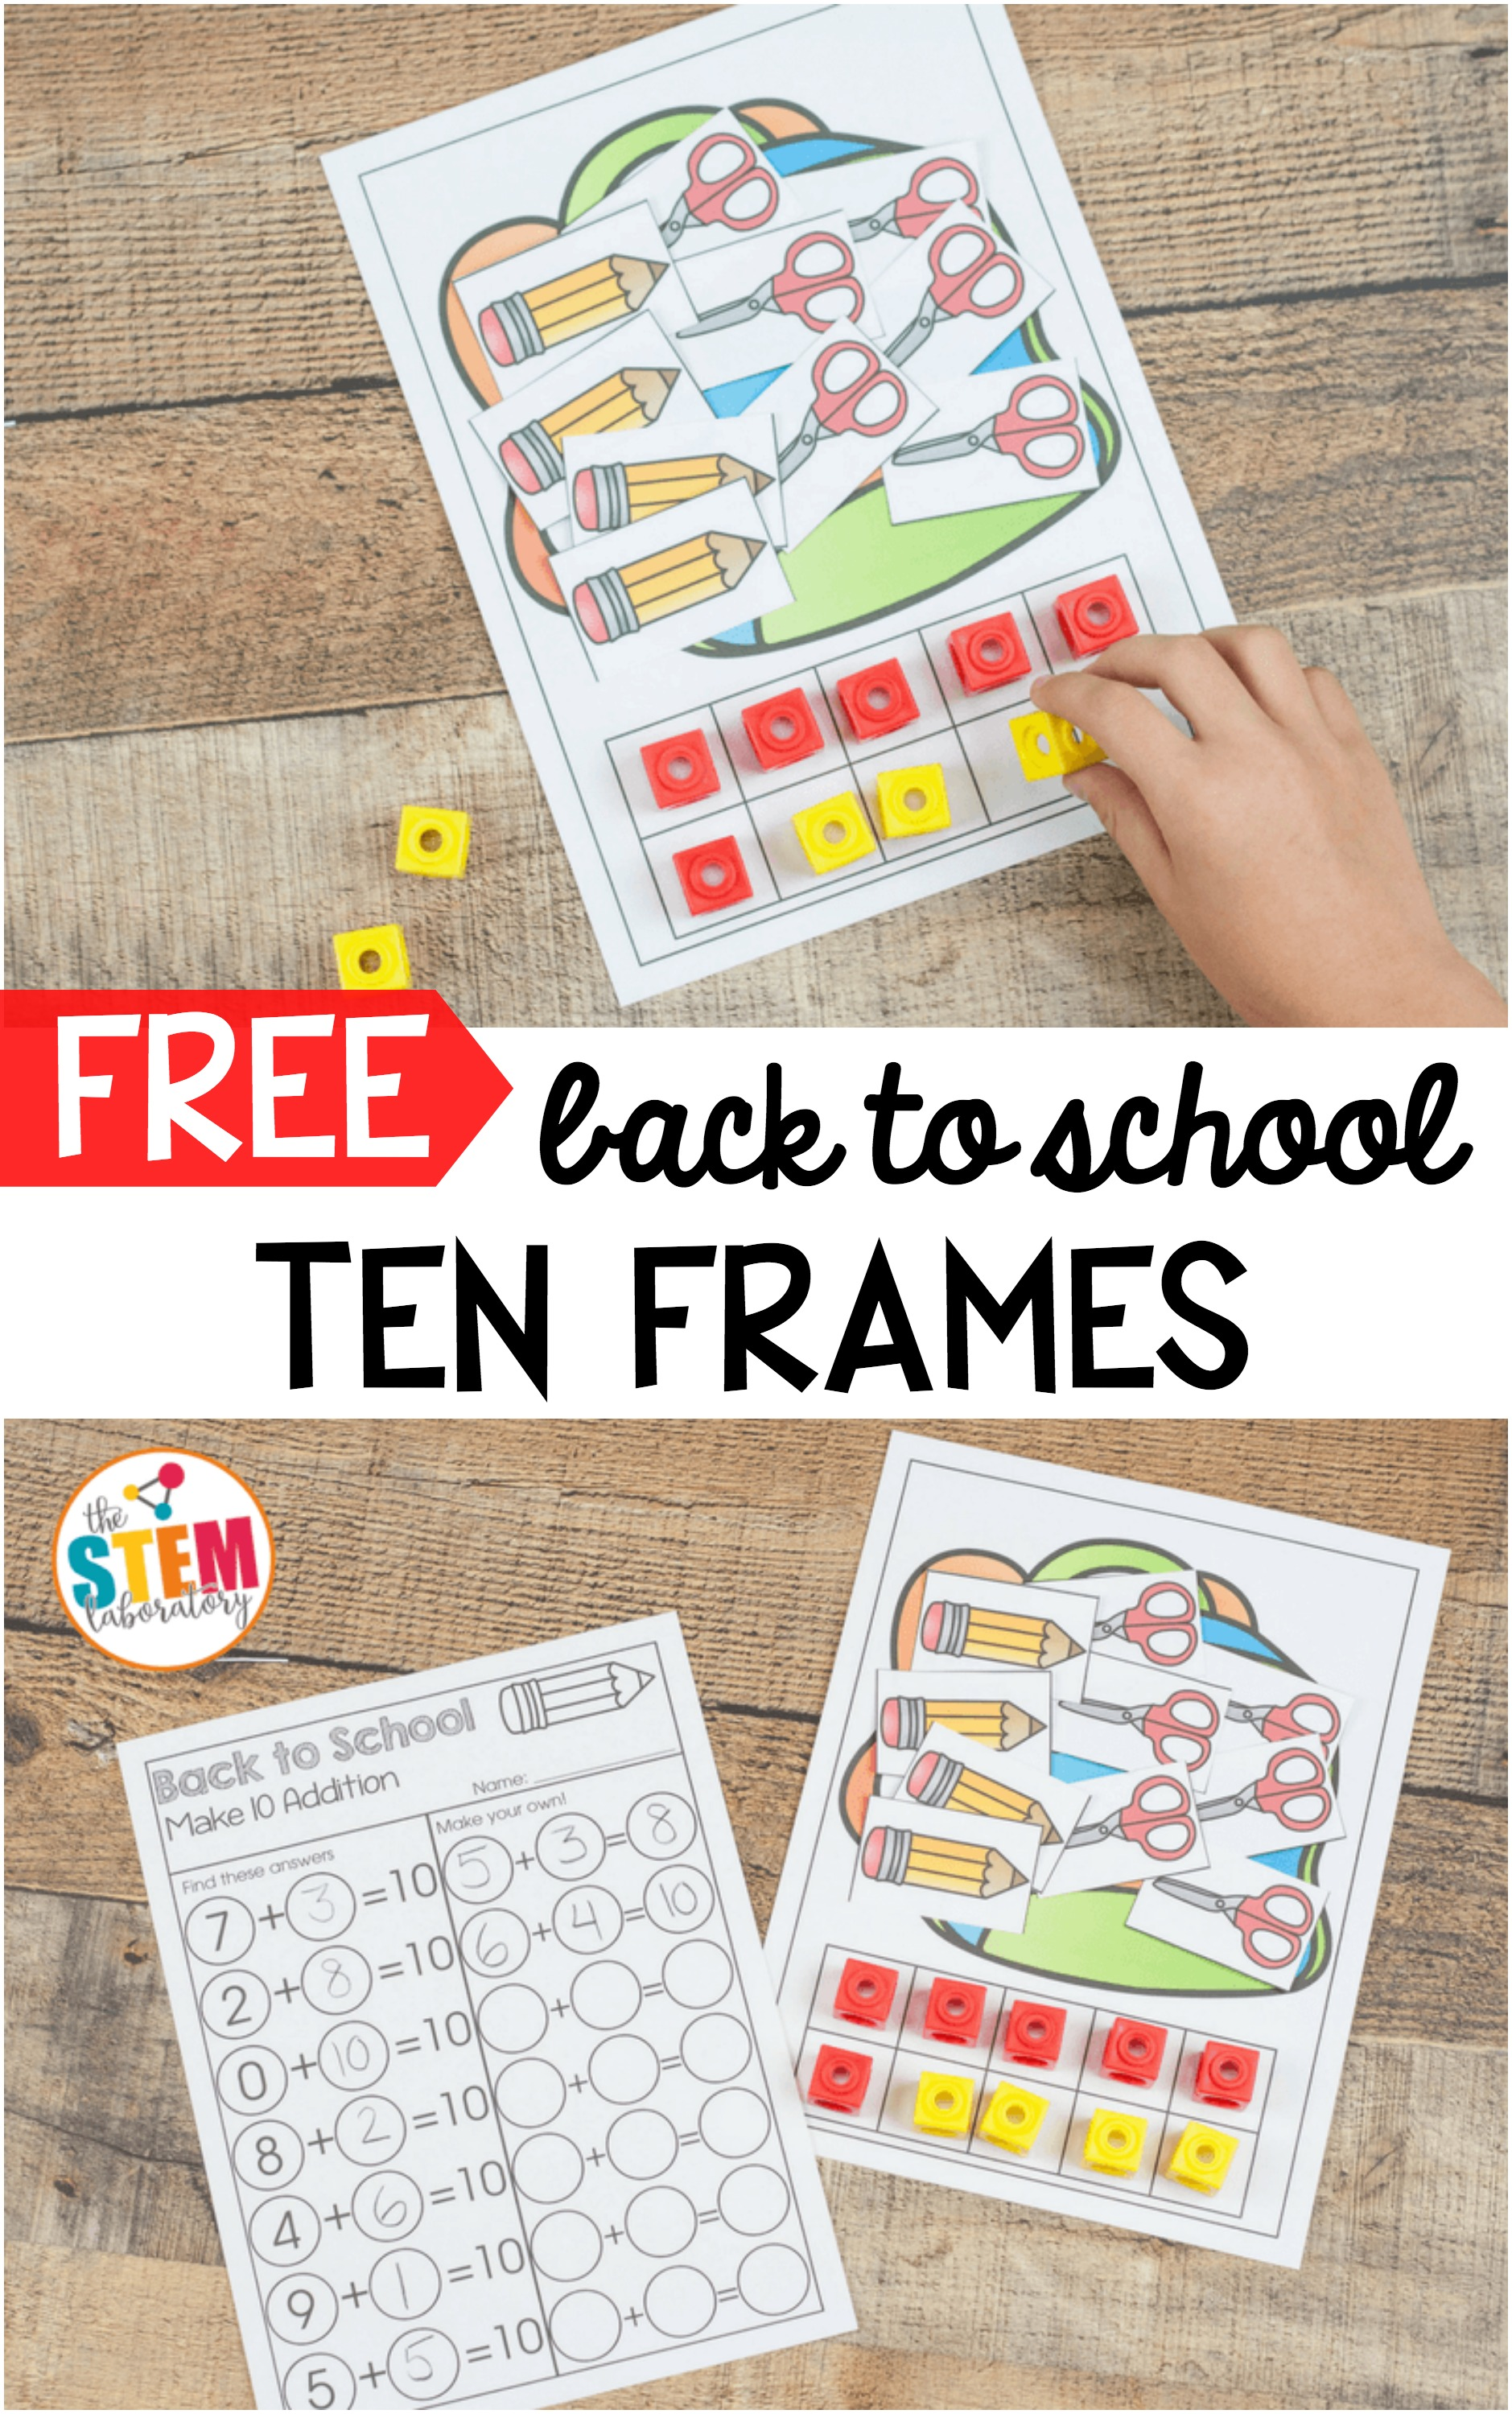 Back to School Ten Frames - The Stem Laboratory